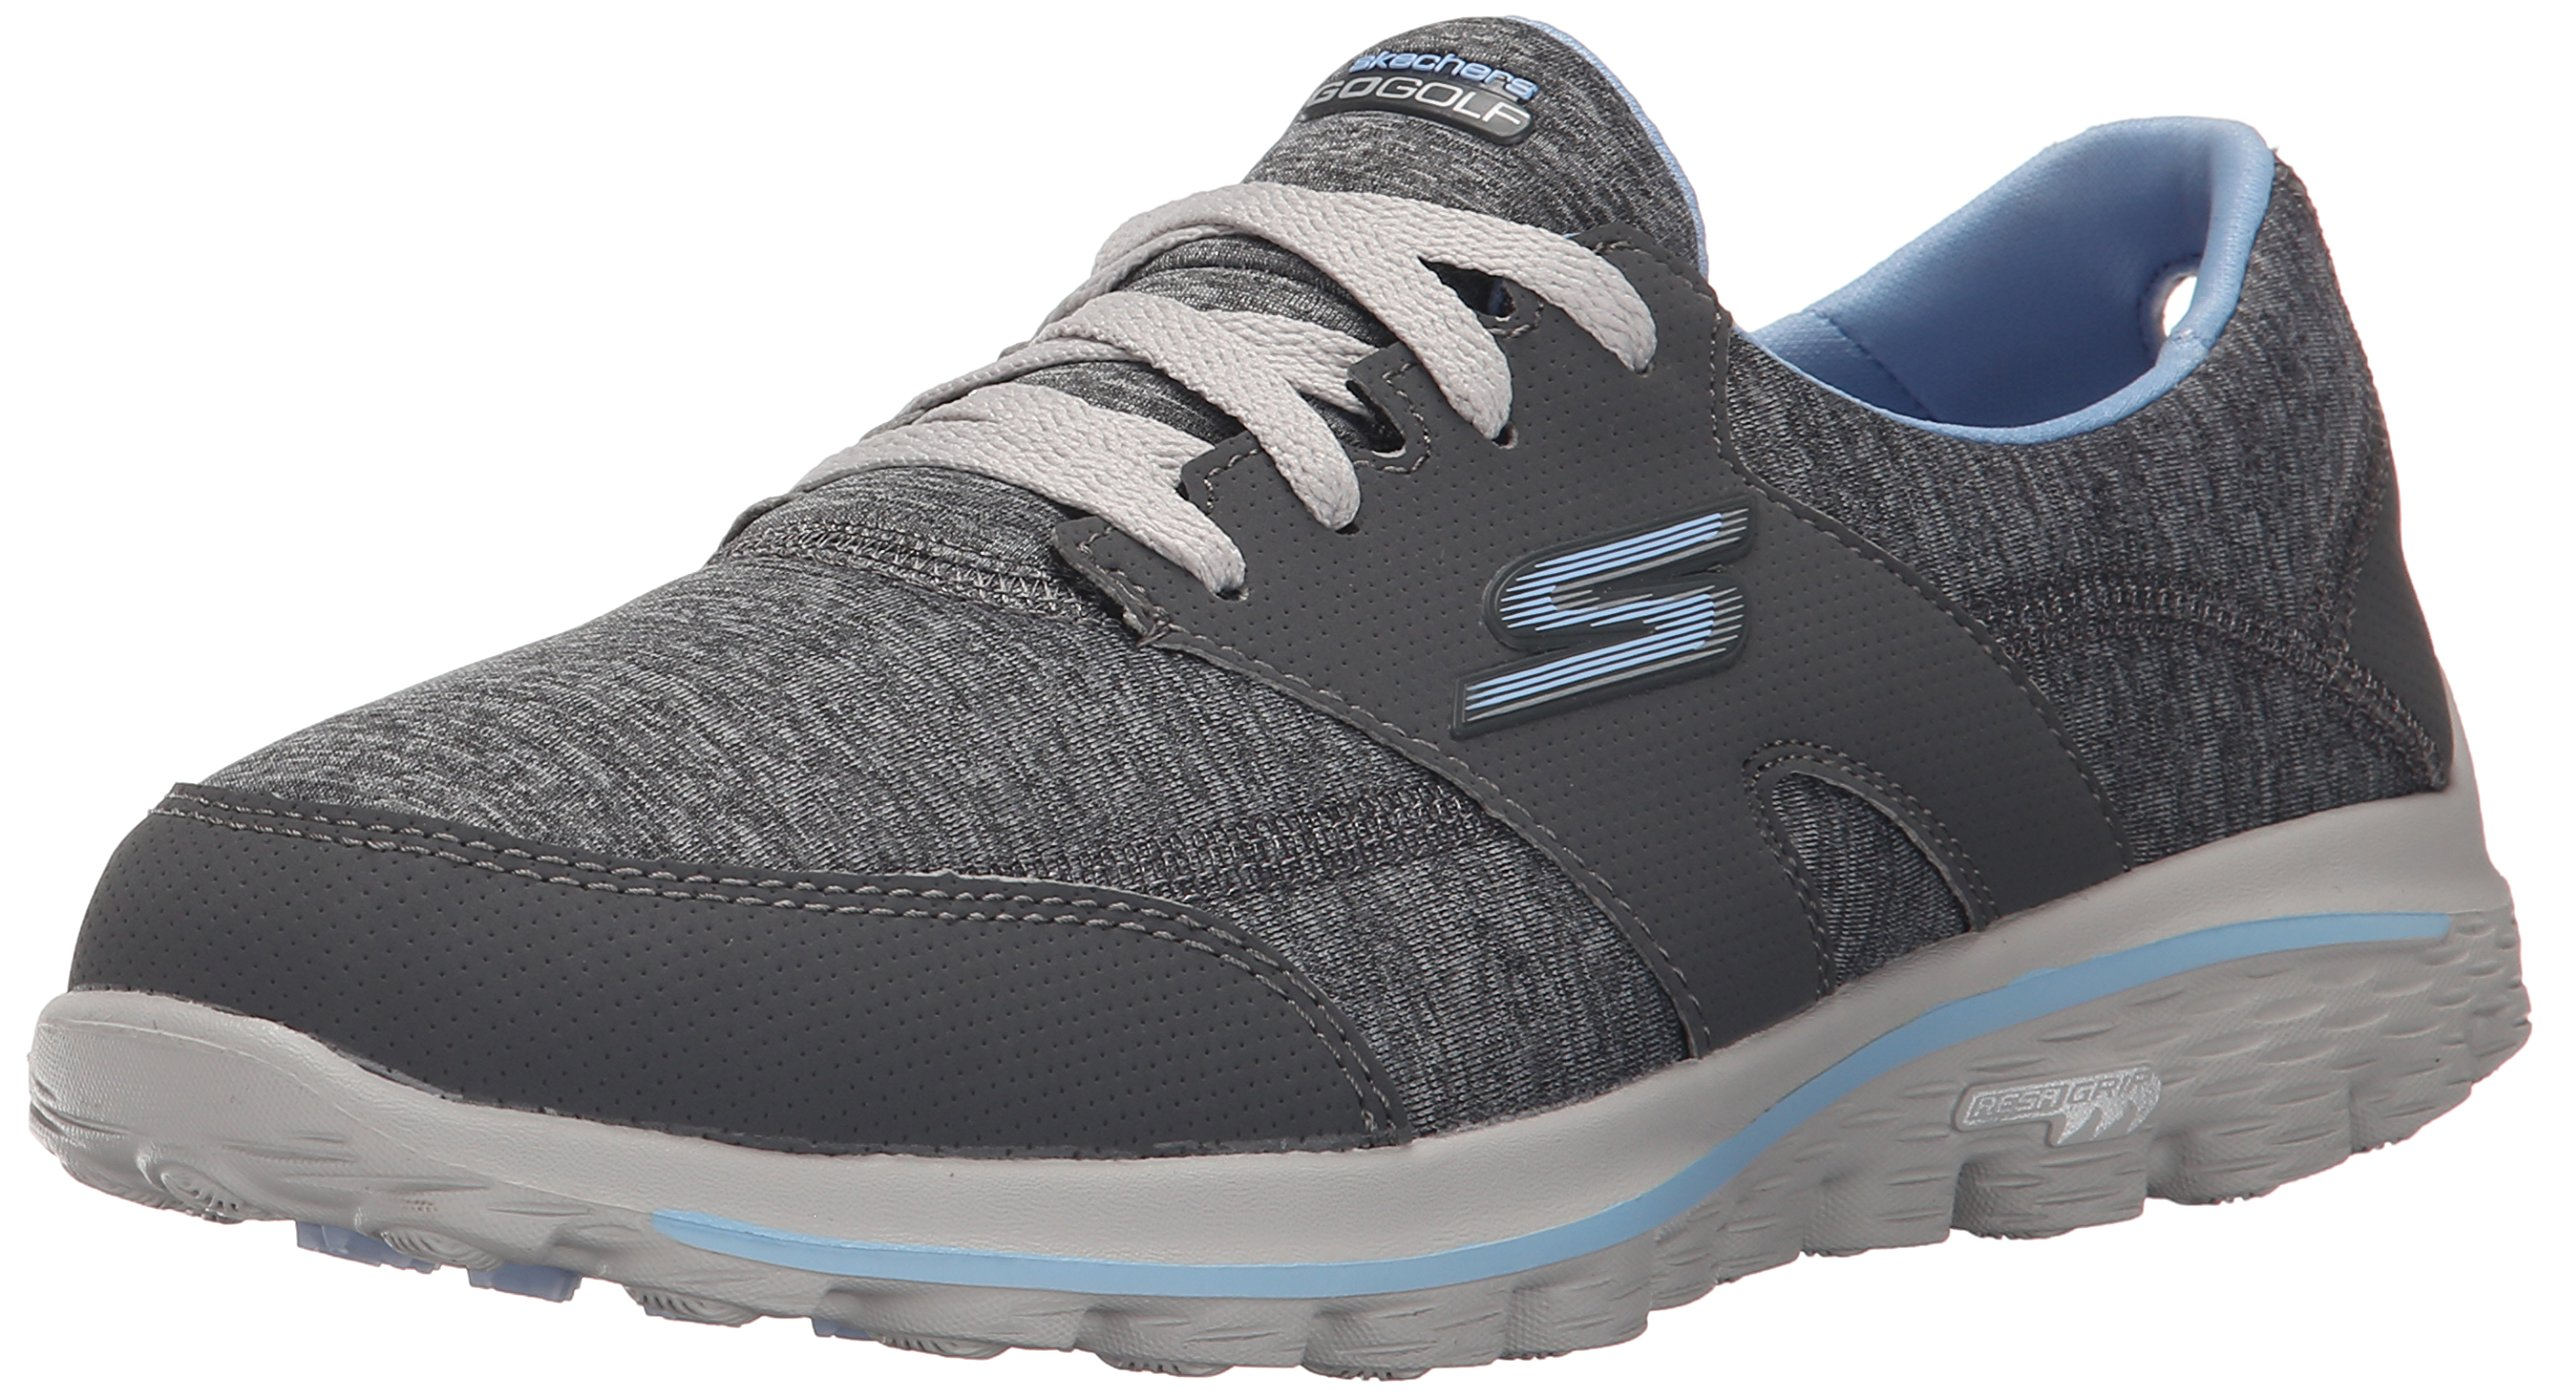 Skechers Performance Women's Go Walk 2  Backswing Golf Shoe,Gray/Blue,7.5 M US